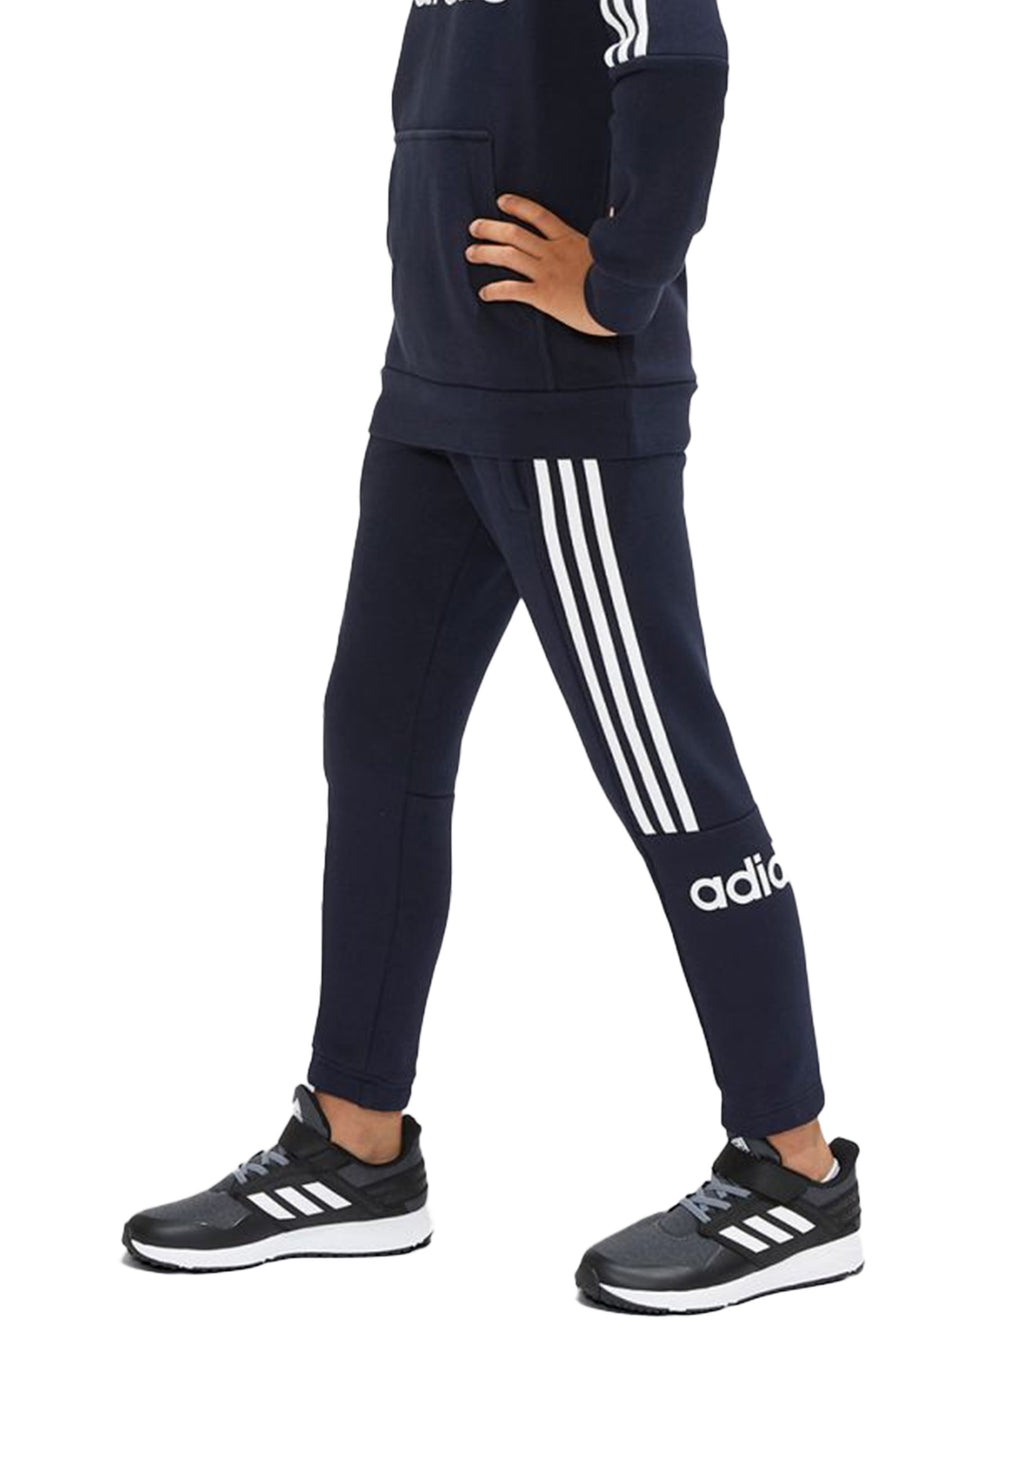 ADIDAS JUNIOR 3 STRIPES JOGGER PANTS <br> EI7980